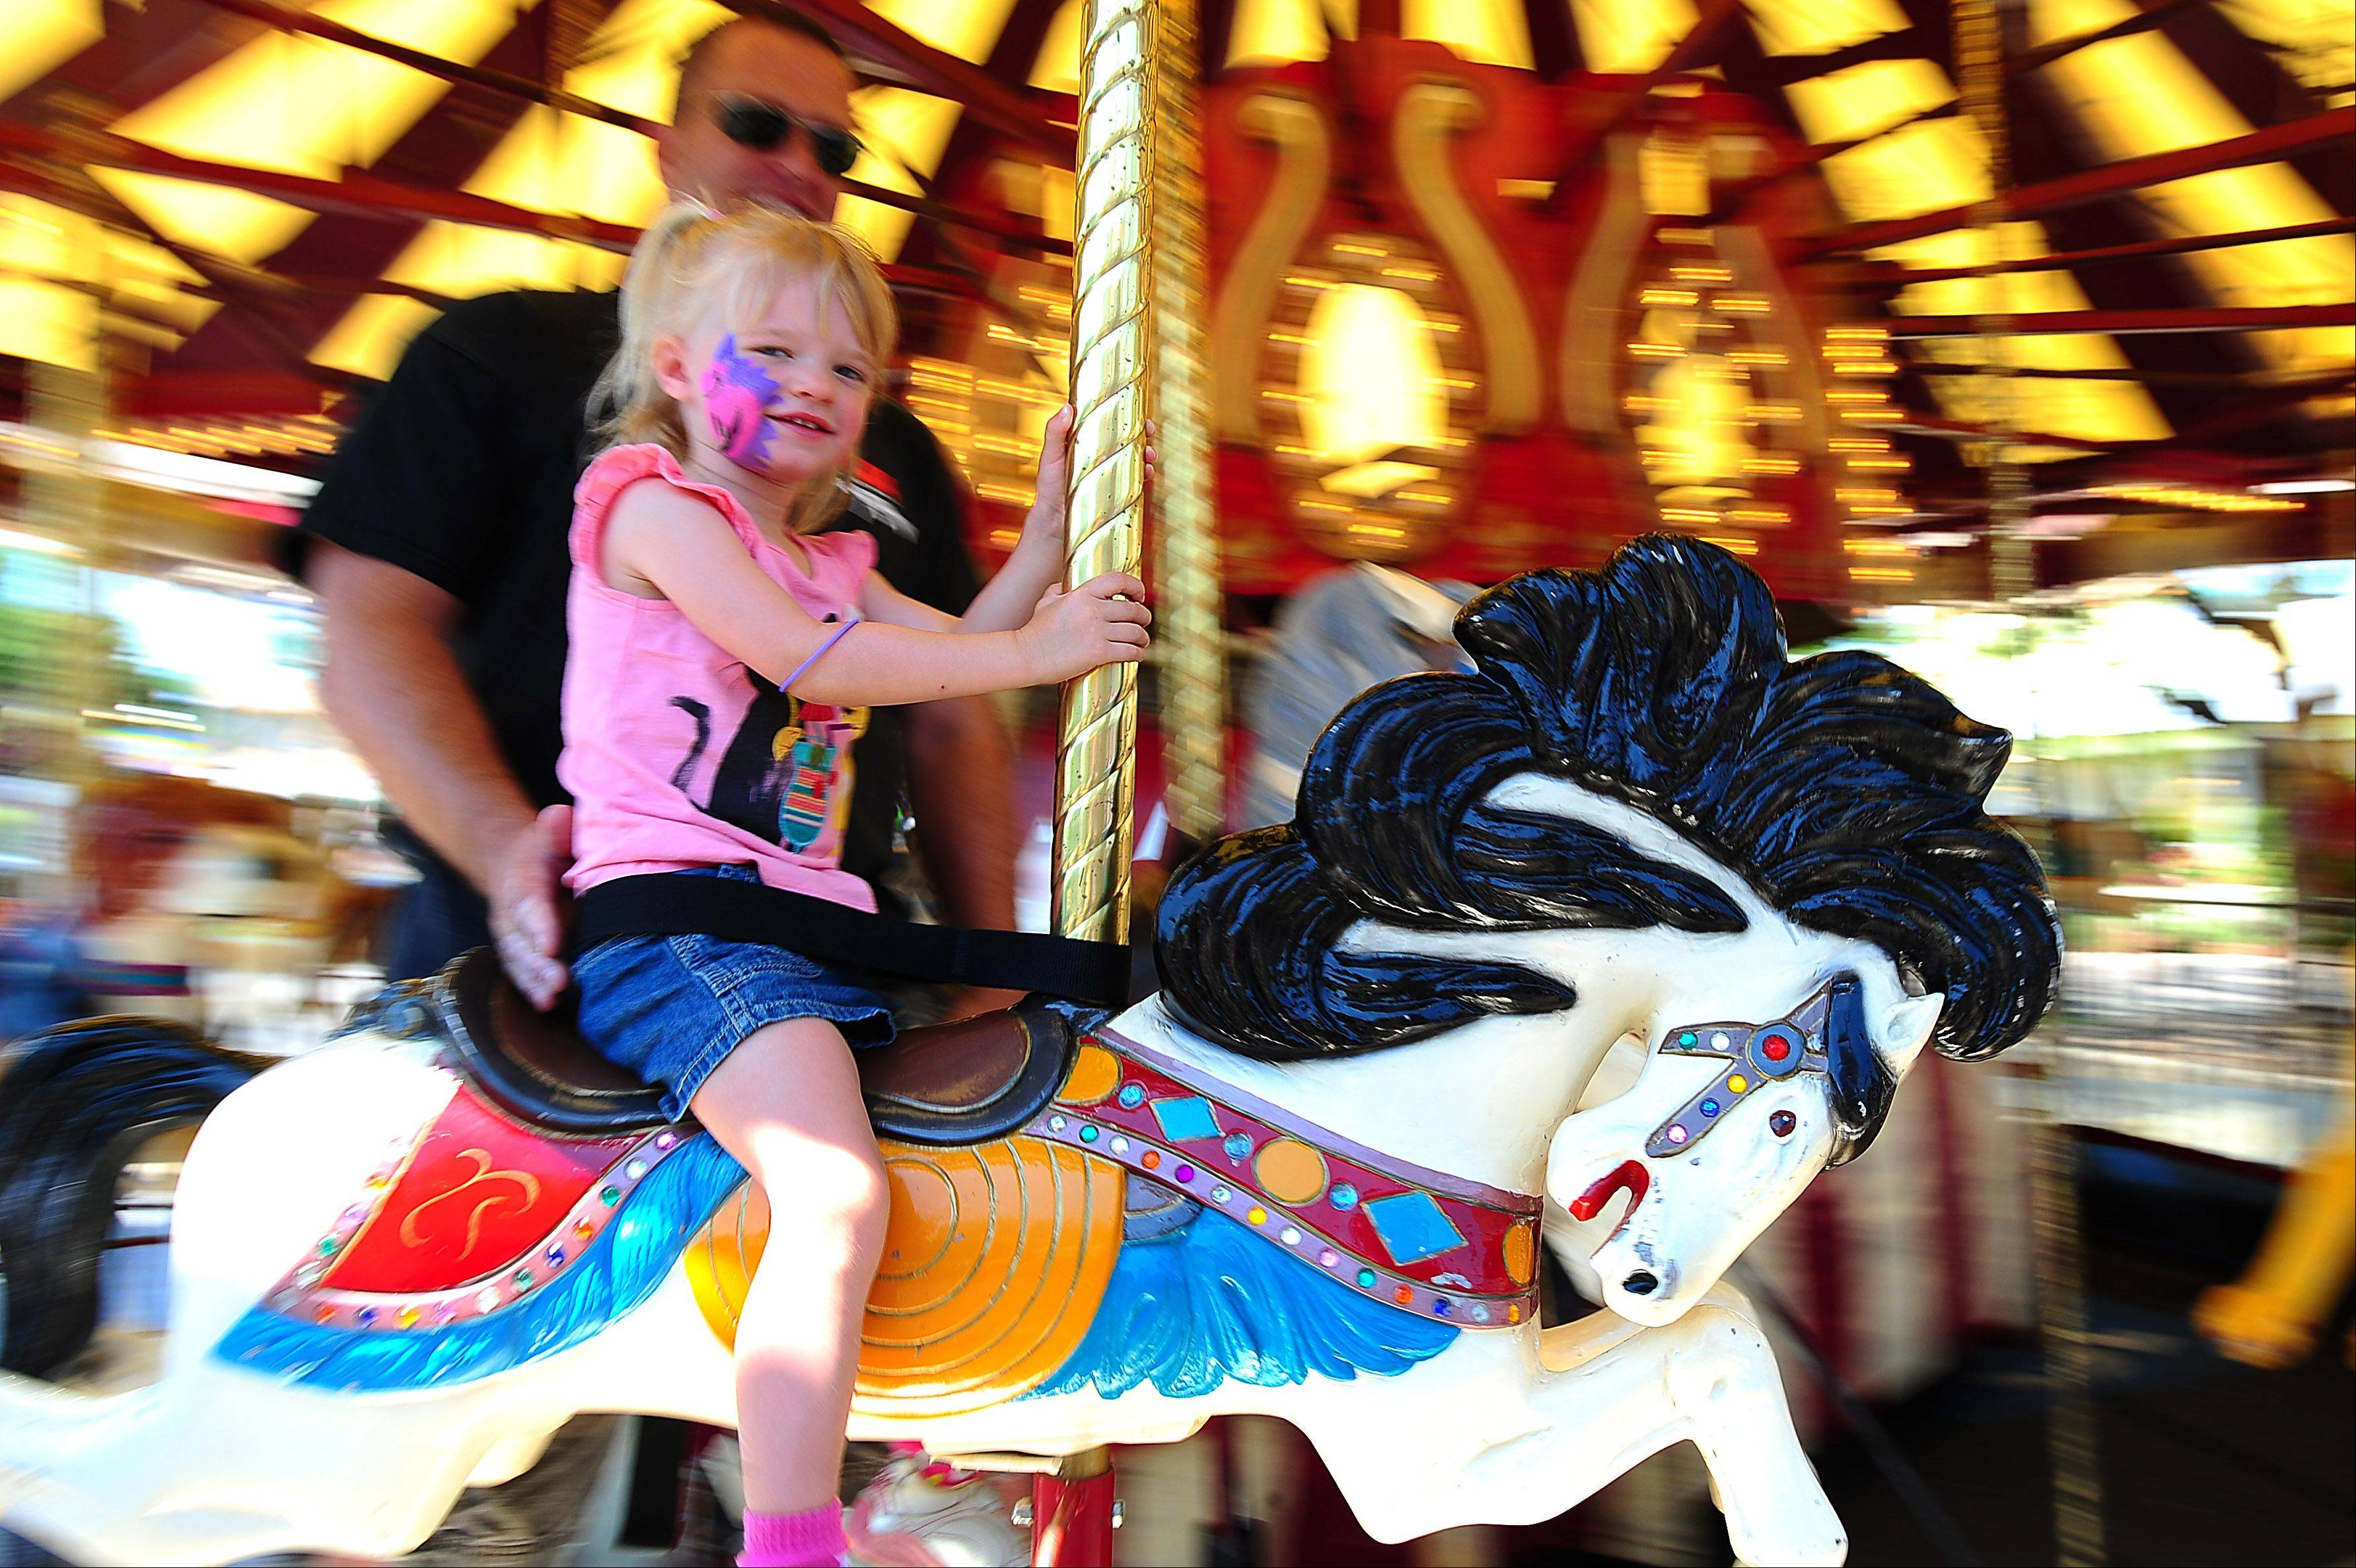 Brad Bilut rides the merry-go-round with his daughter Jenna during last year's Pride of the Fox RiverFest, this year renamed City of St. Charles RiverFest.